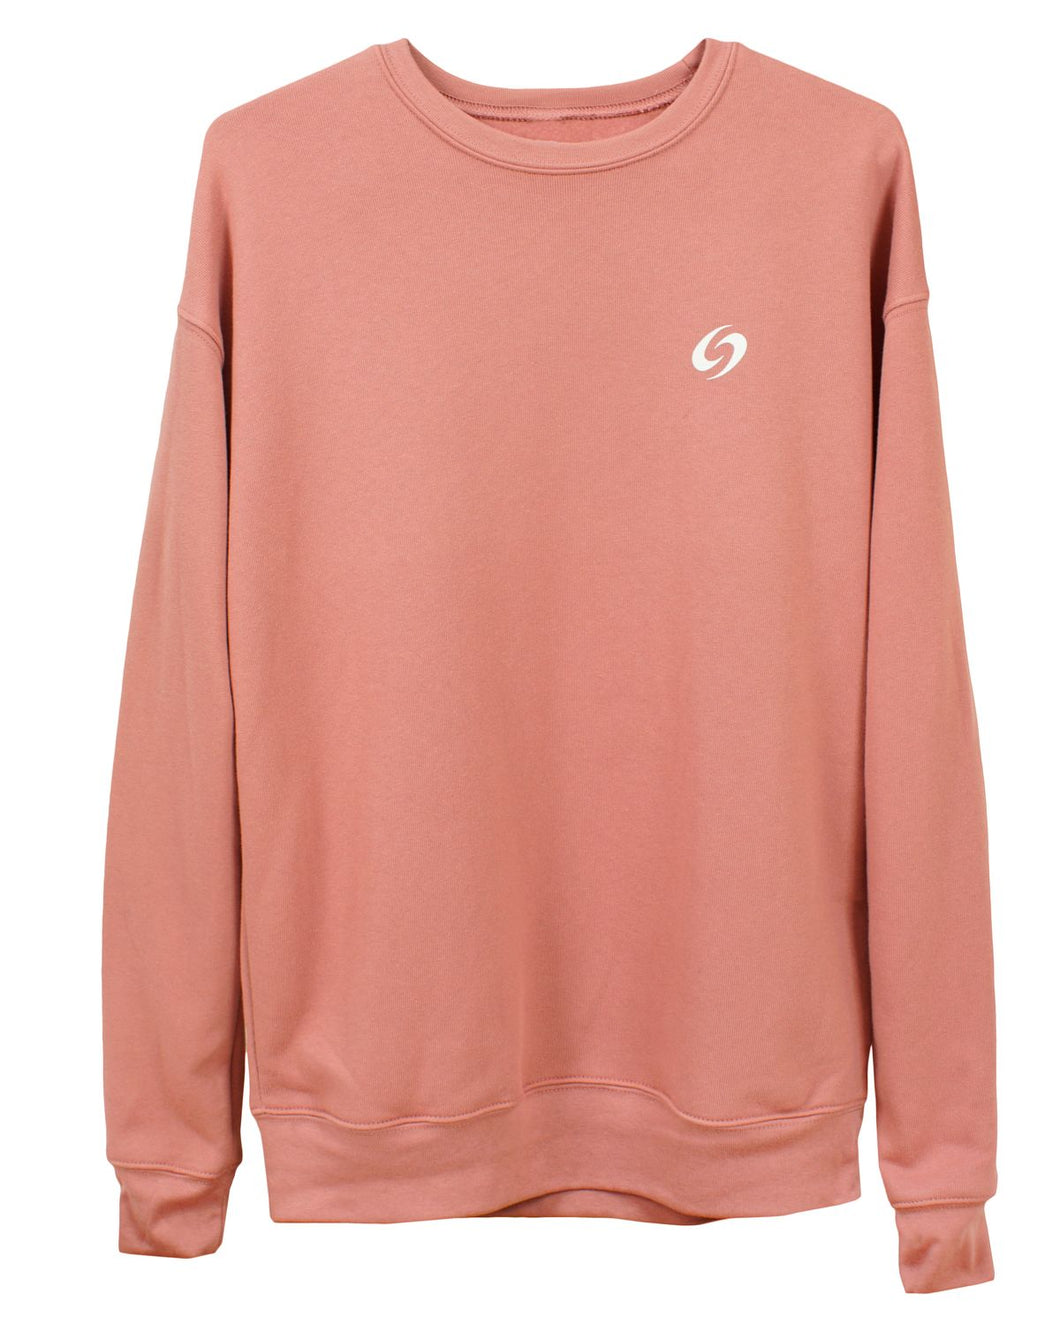 Dreamy Sweatshirt